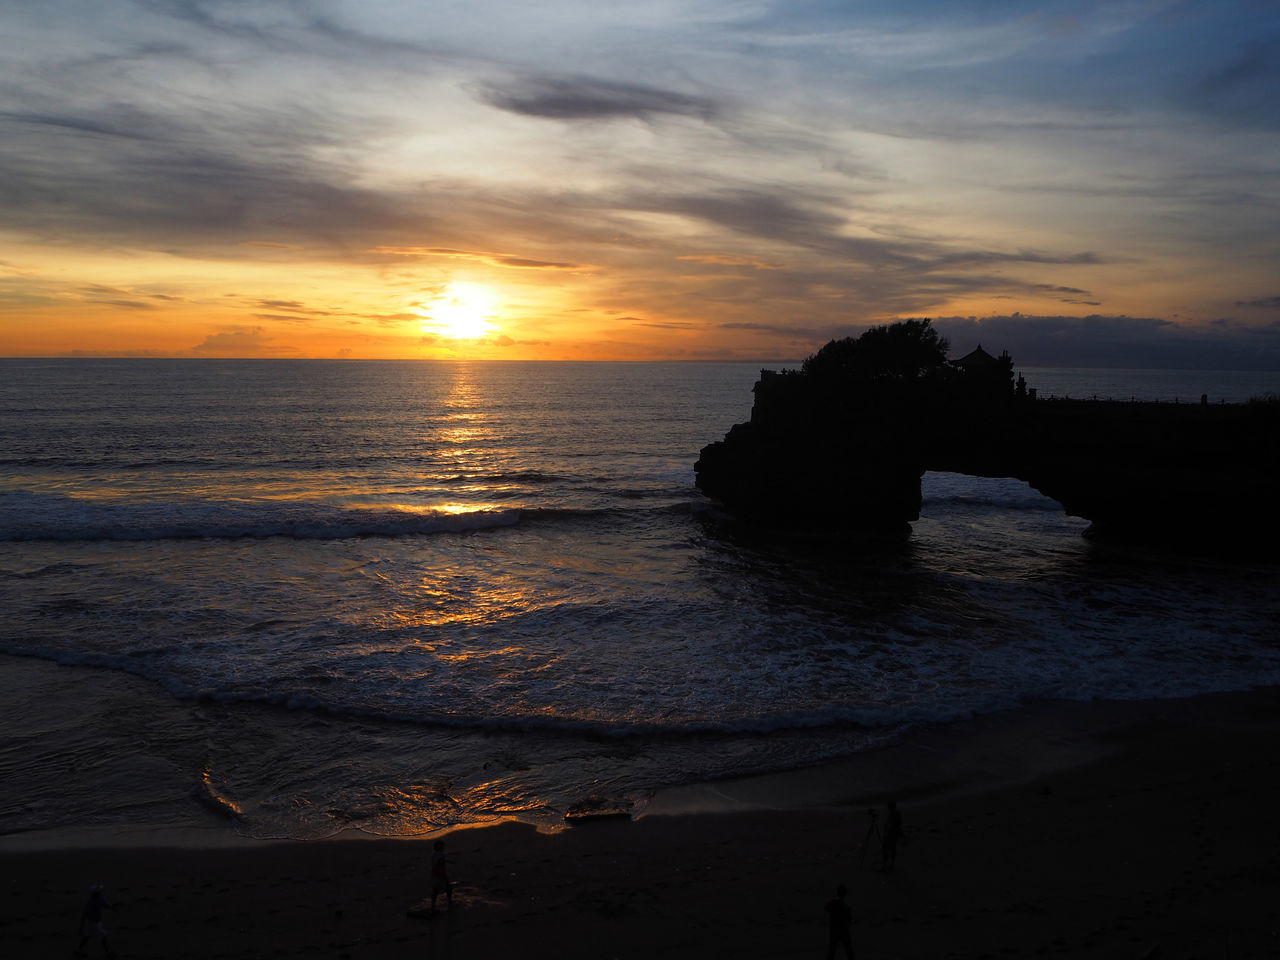 💛Love my sunset💛 Travel Tanah Lot Wave Bali Bali, Indonesia Life Is A Beach Beach Beauty In Nature Cloud - Sky Dramatic Sky Exceptional Photographs EyeEmNewHere Landscapes Lifestyles Nature Ocean Outdoors Romantic Sky Scenics Sea Still Life Sunset Sunset On The Beach Tadaa Community Tranquility